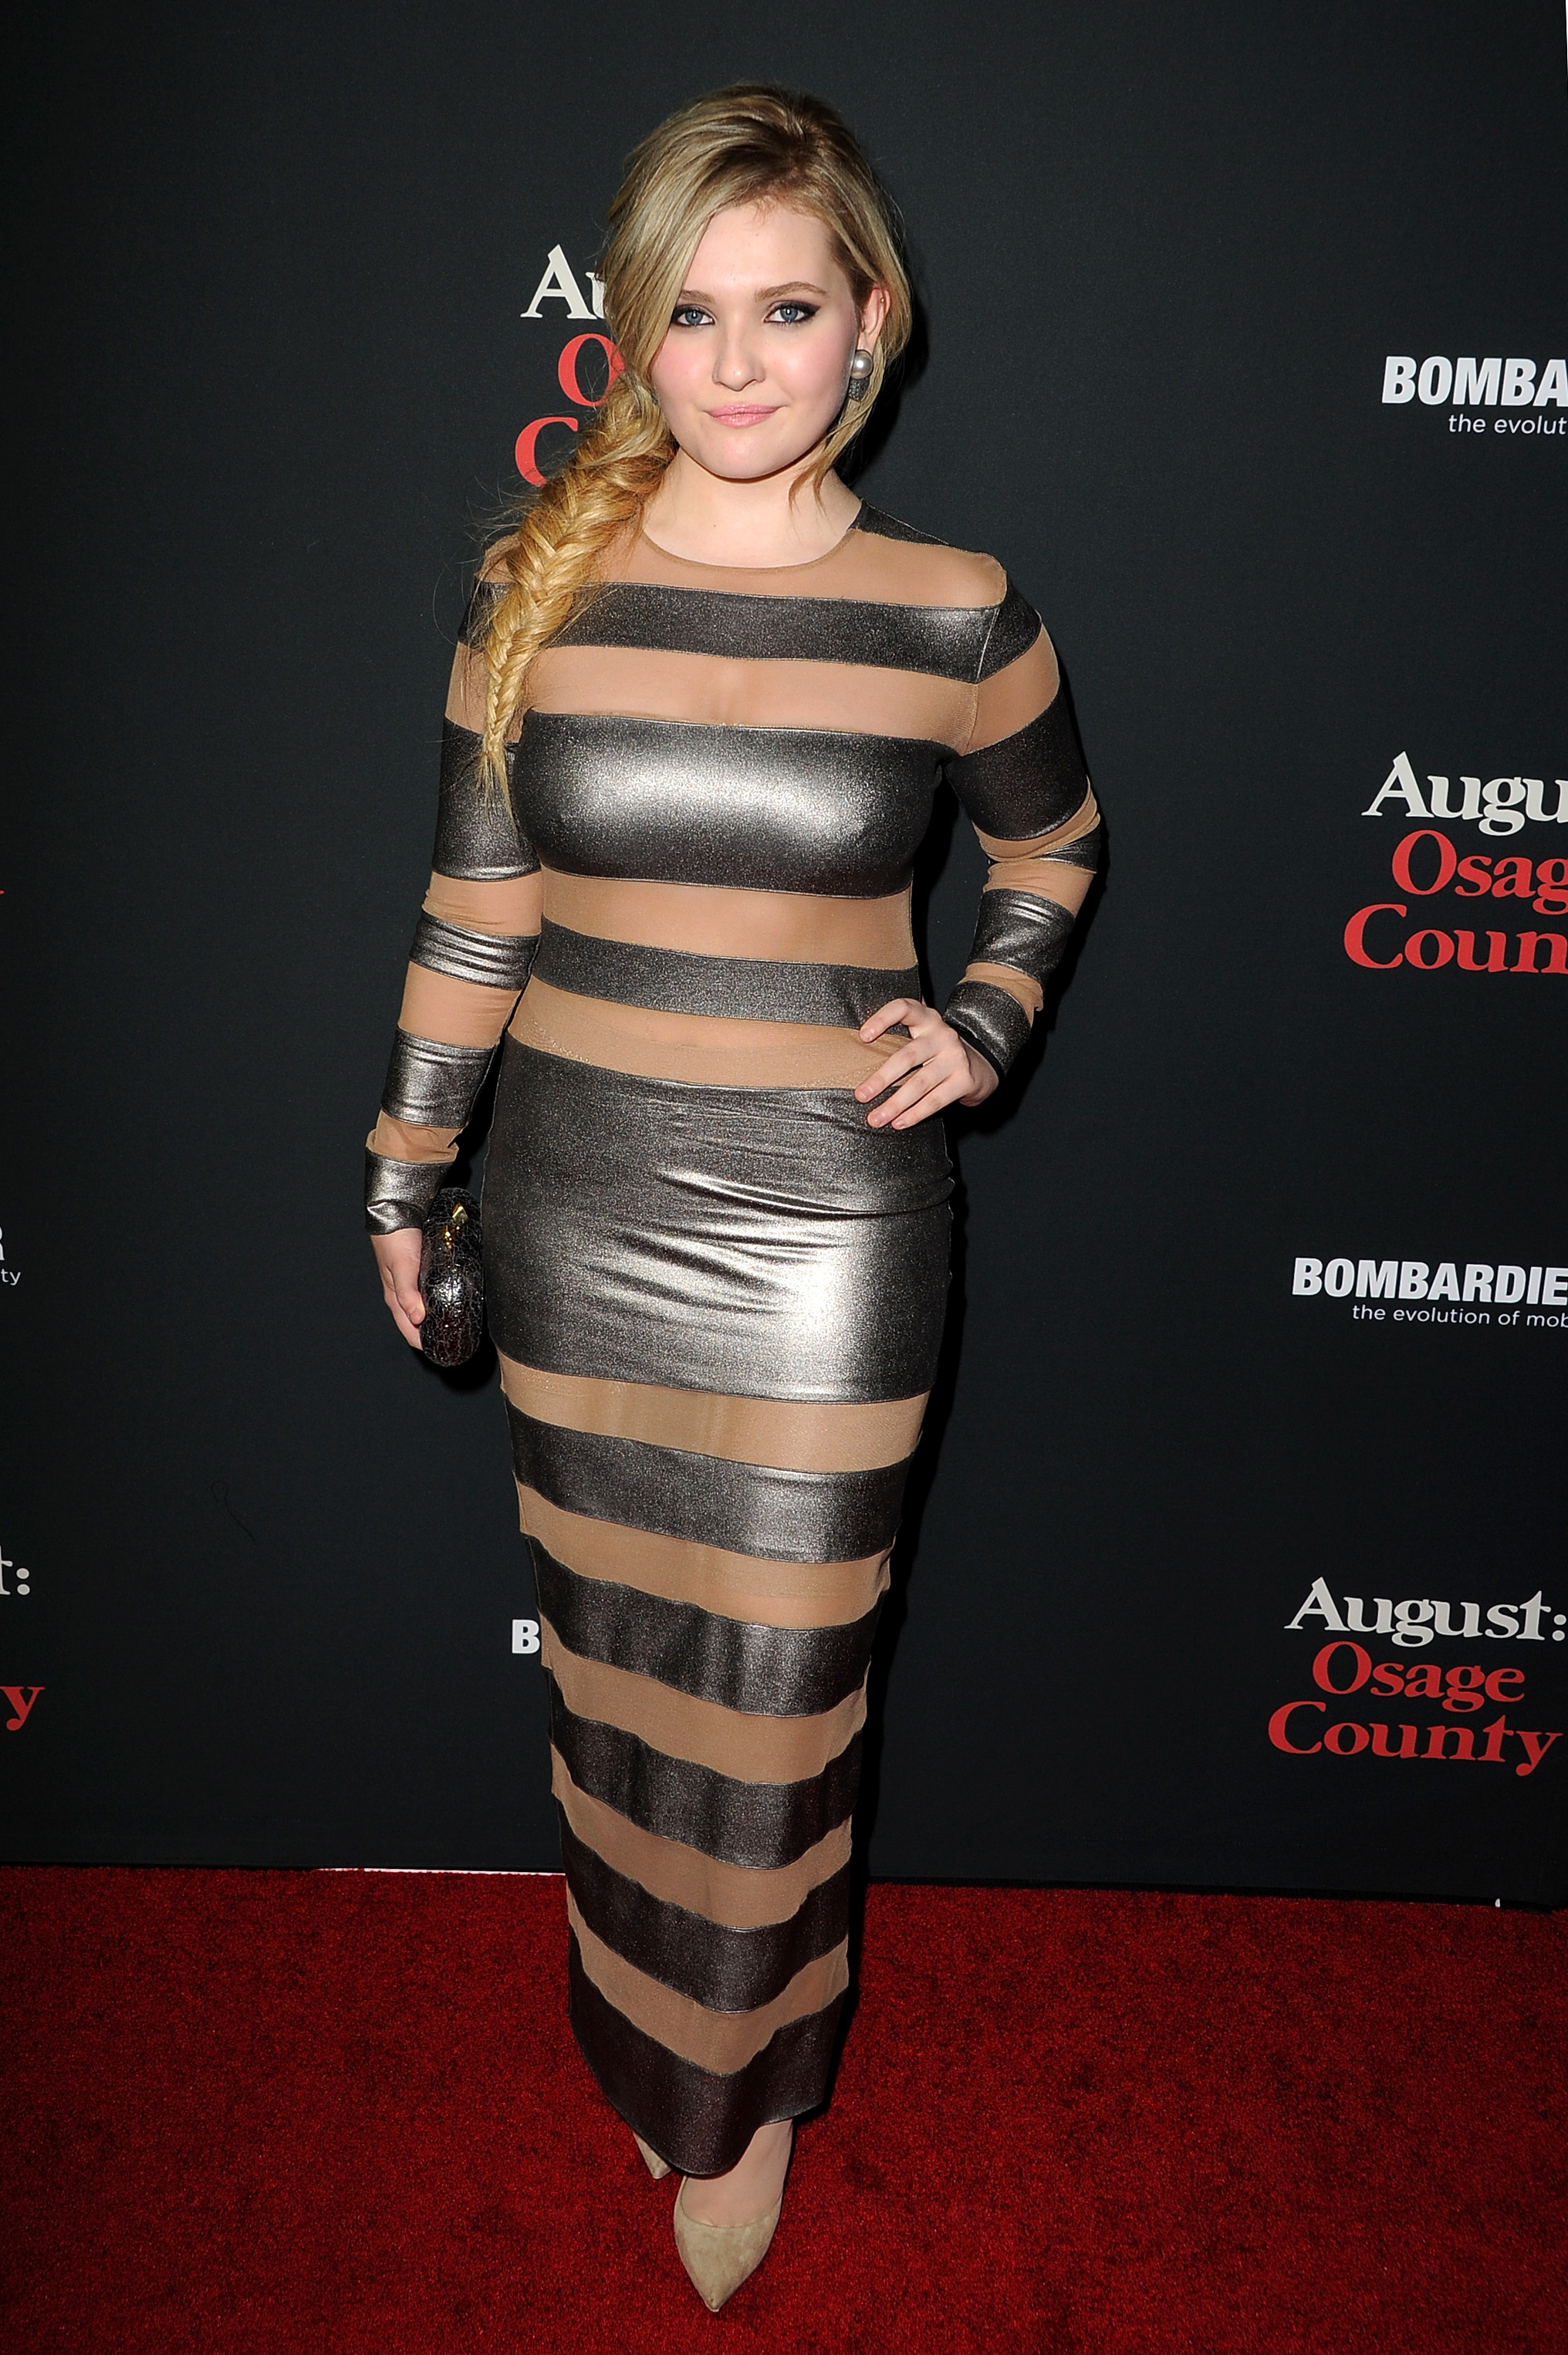 abigail breslin osage country